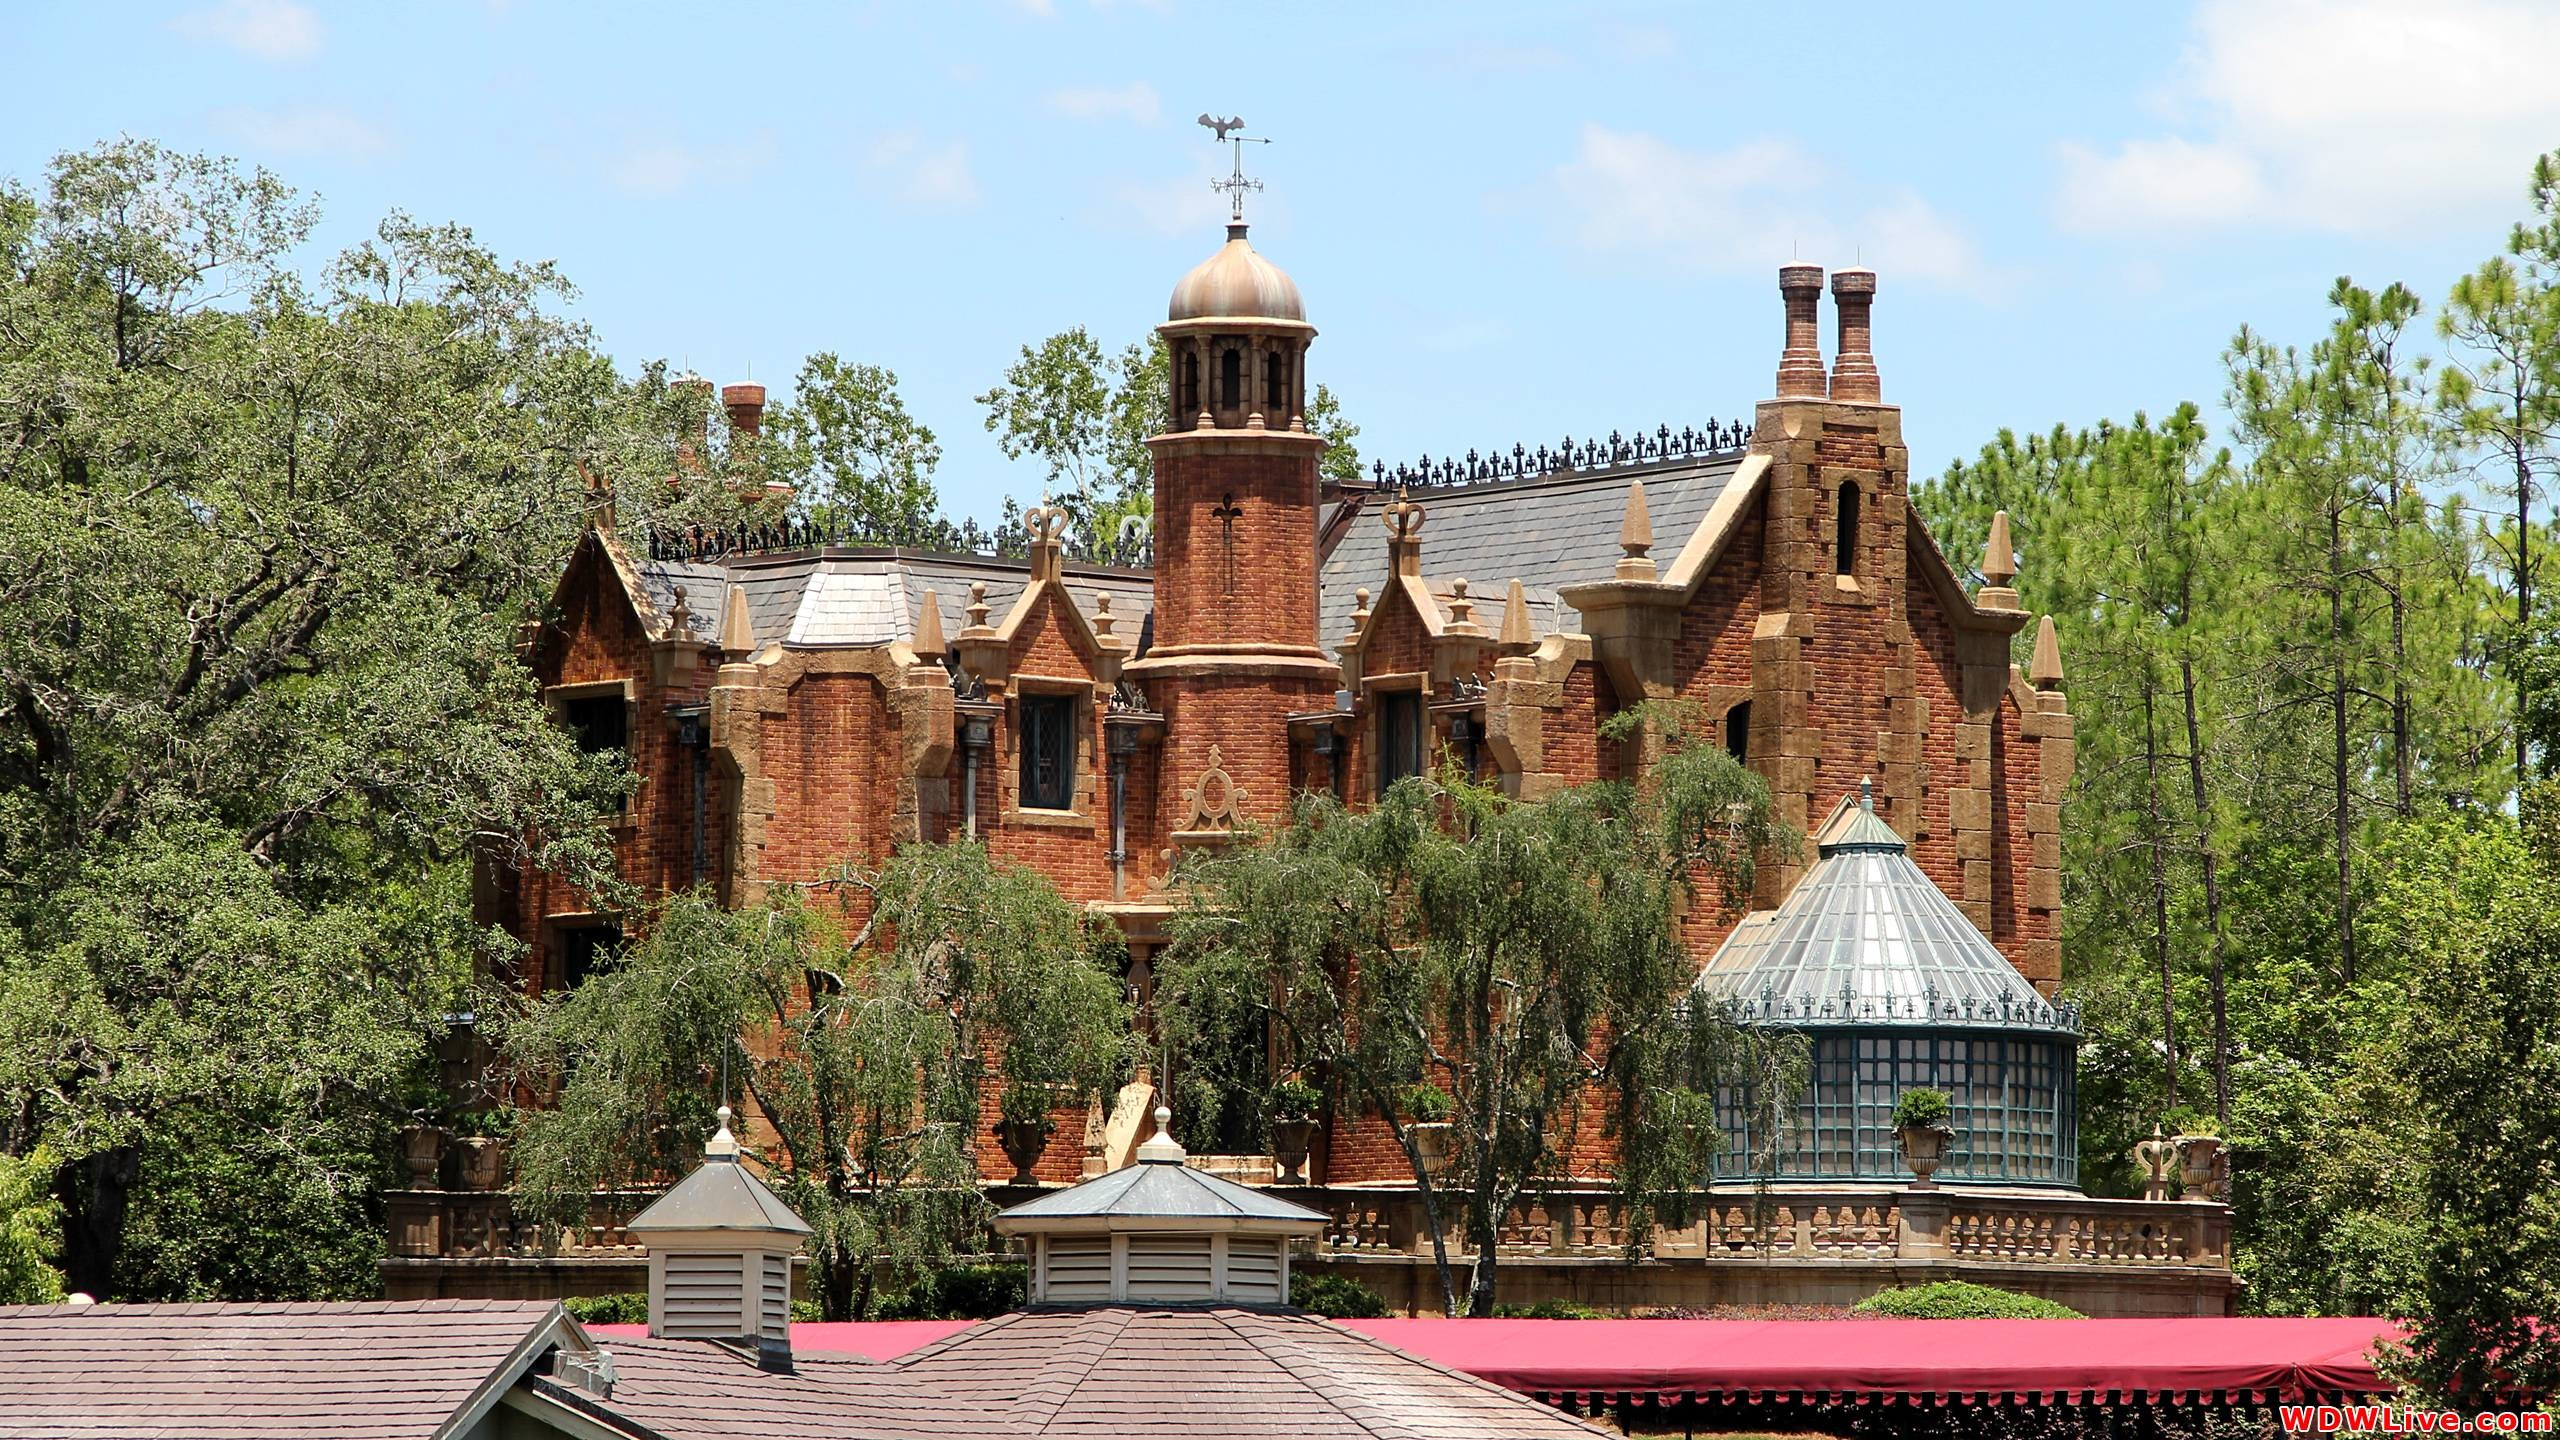 2560x1440 Haunted Mansion Desktop Wallpaper Images & Pictures - Becuo